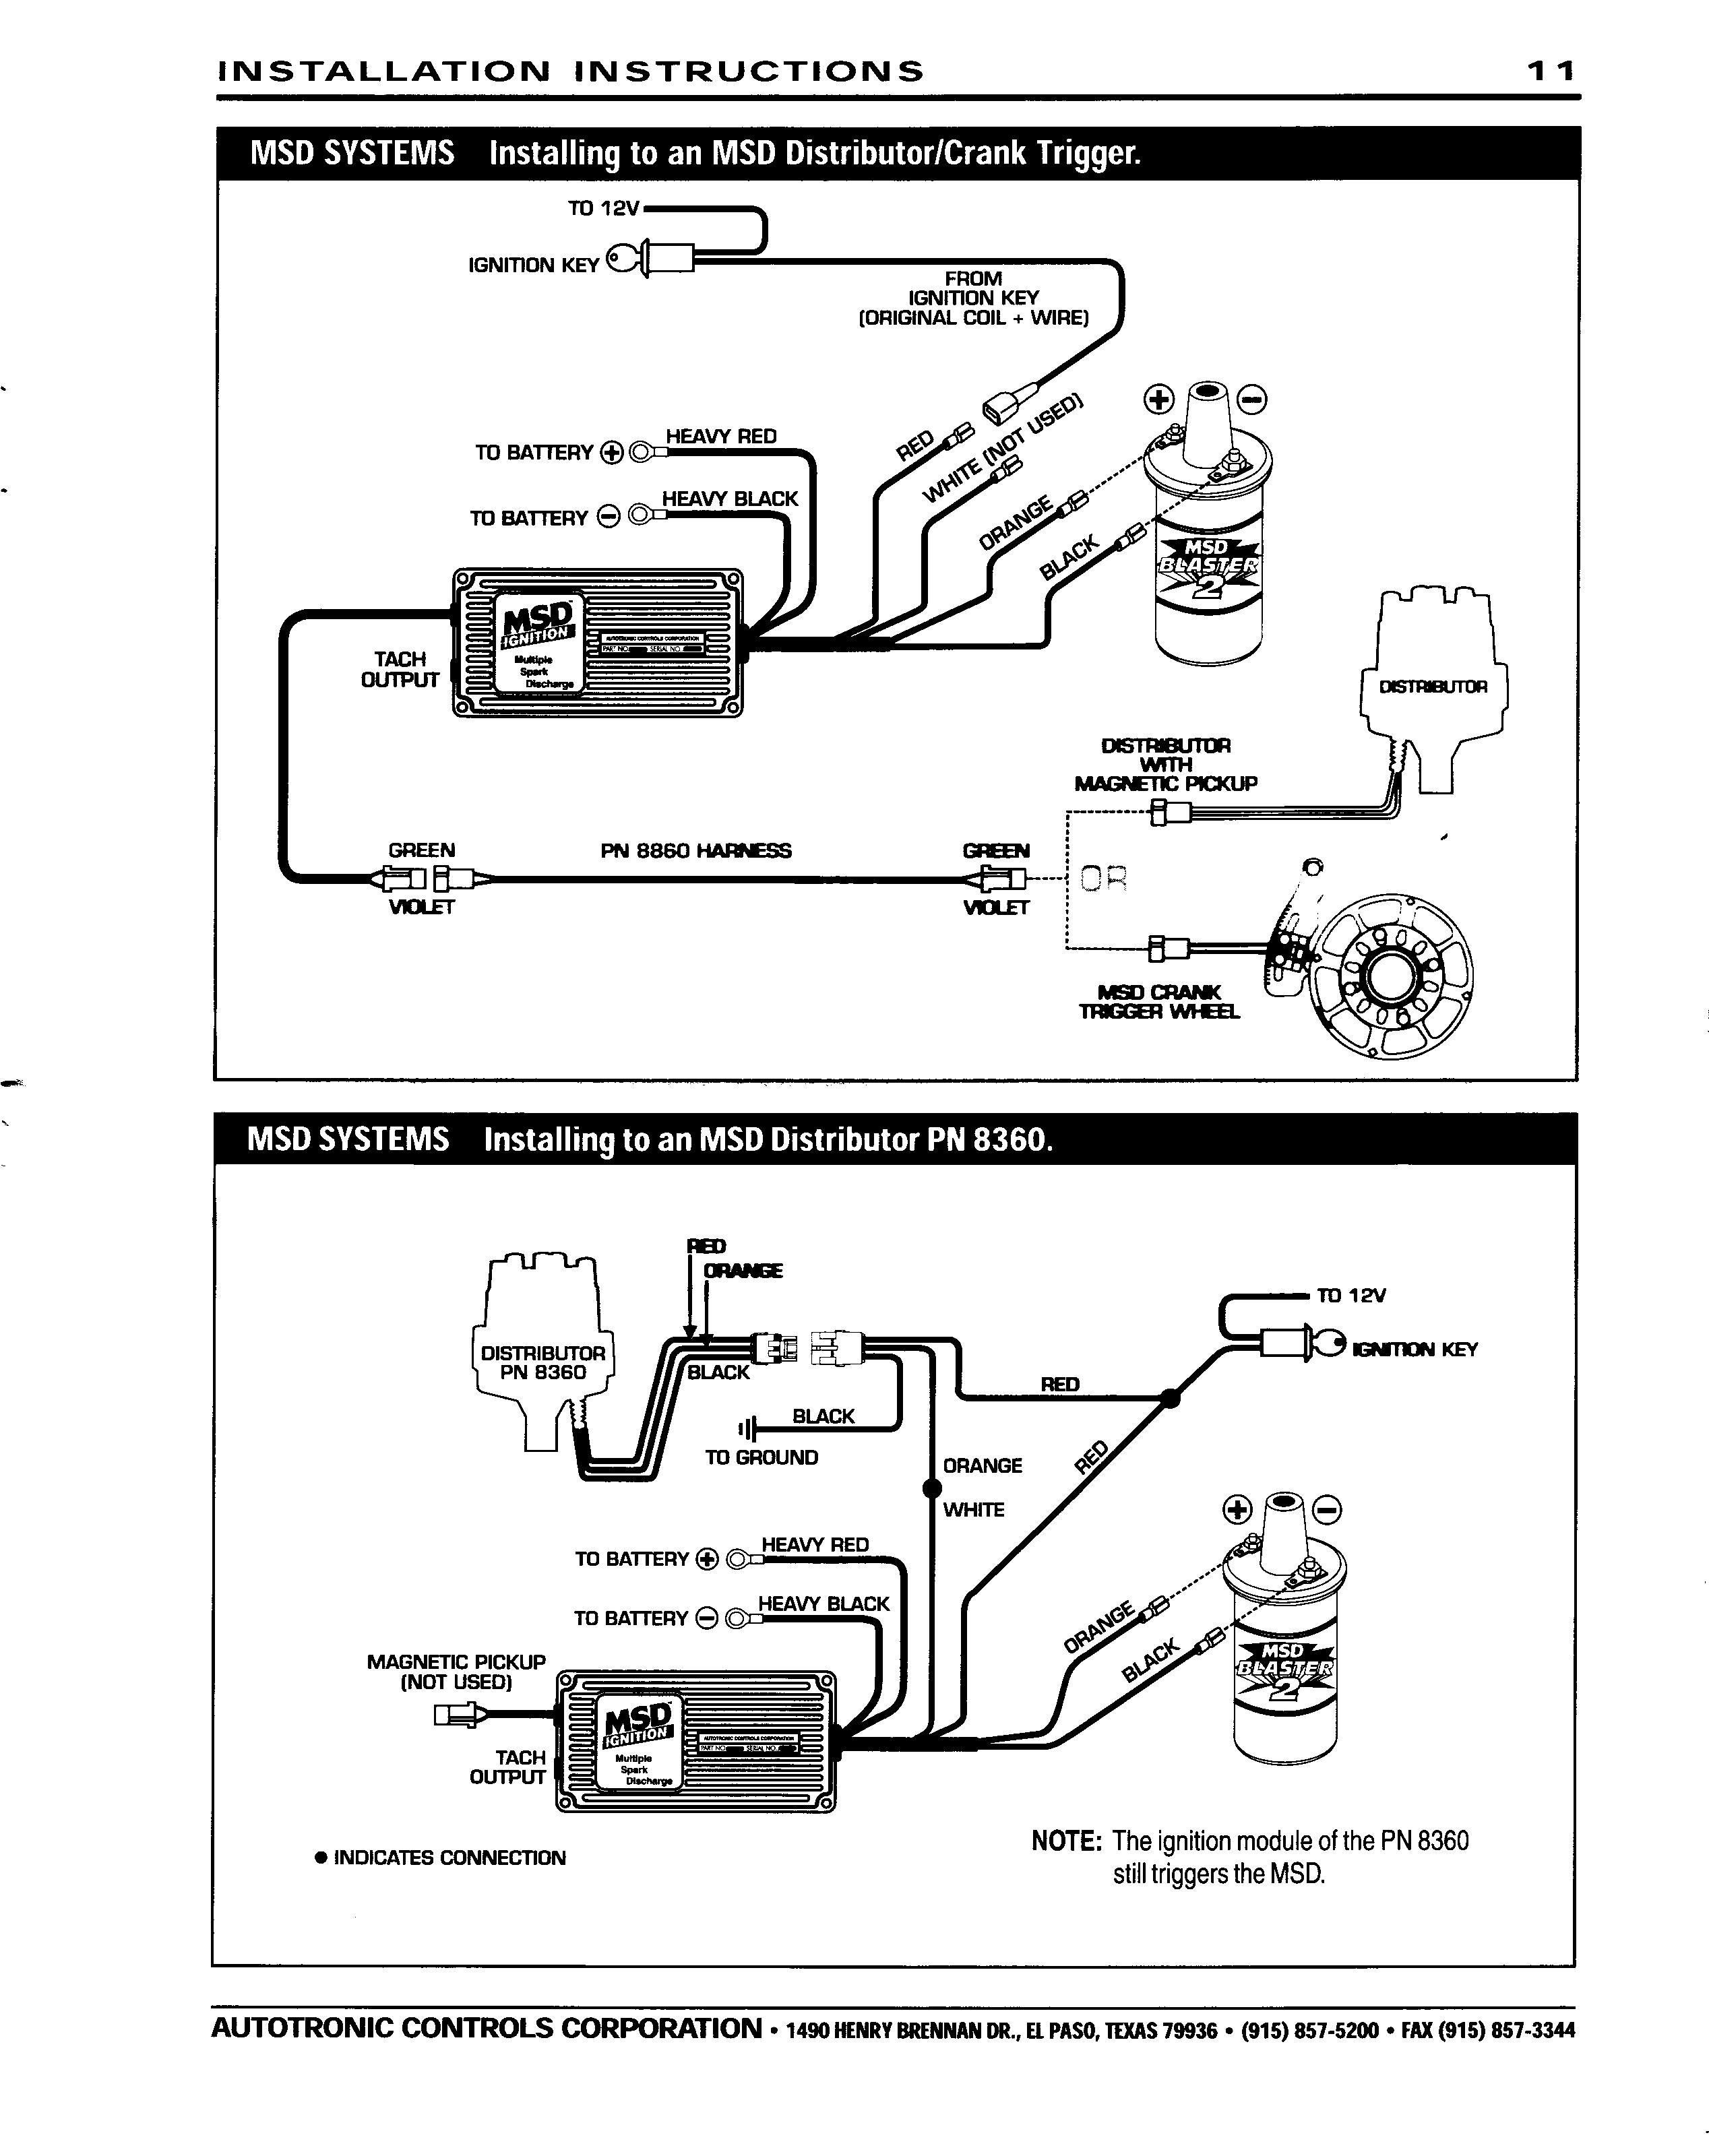 taylor dunn wiring diagram pdf taylor dunn electric cart wiring diagram wiring diagram data  taylor dunn electric cart wiring